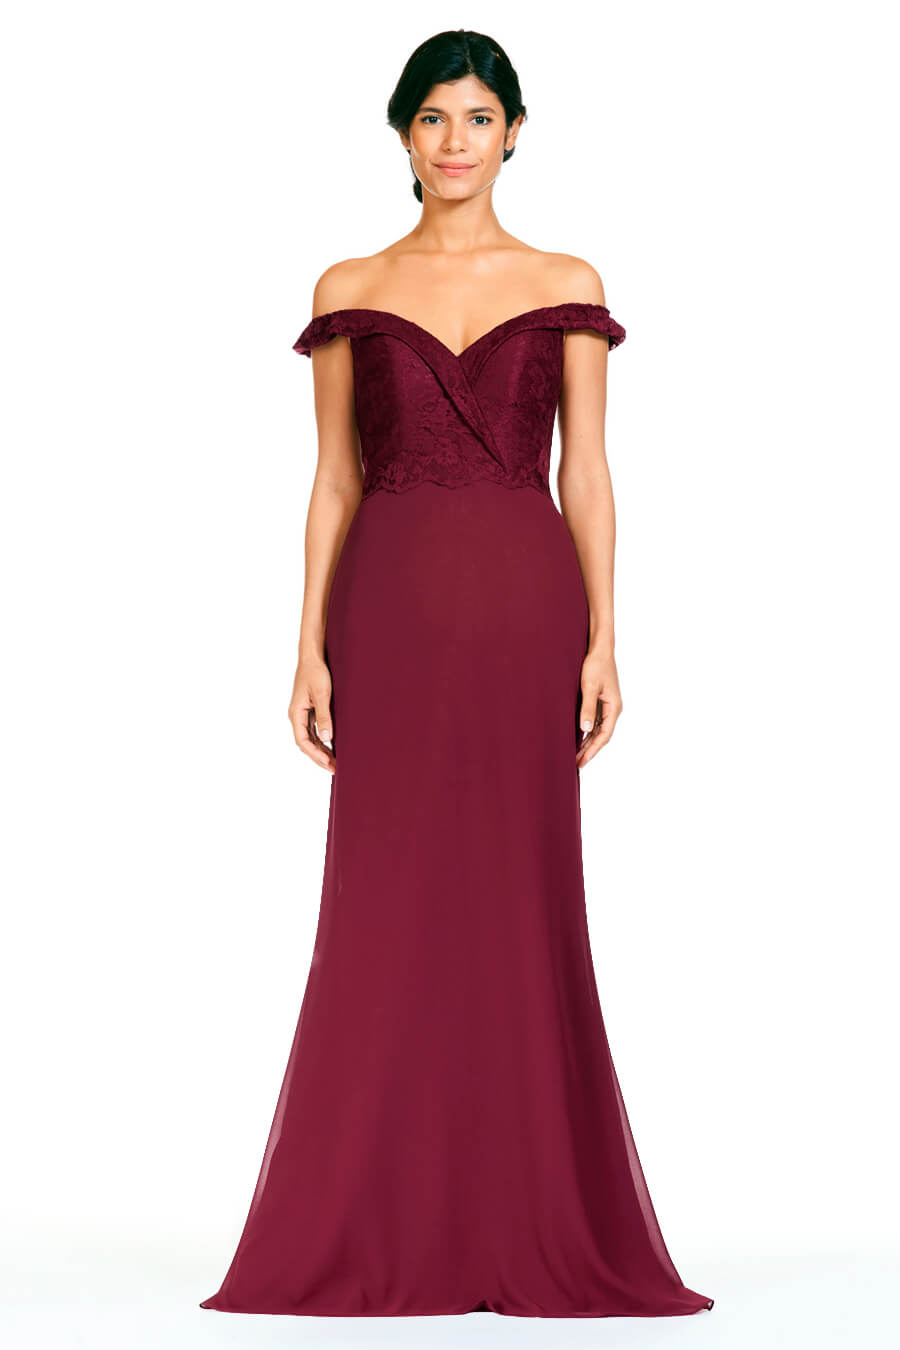 Hundreds of different styles and color combination bridesmaids dresses to  choose from. 252c25436a7c